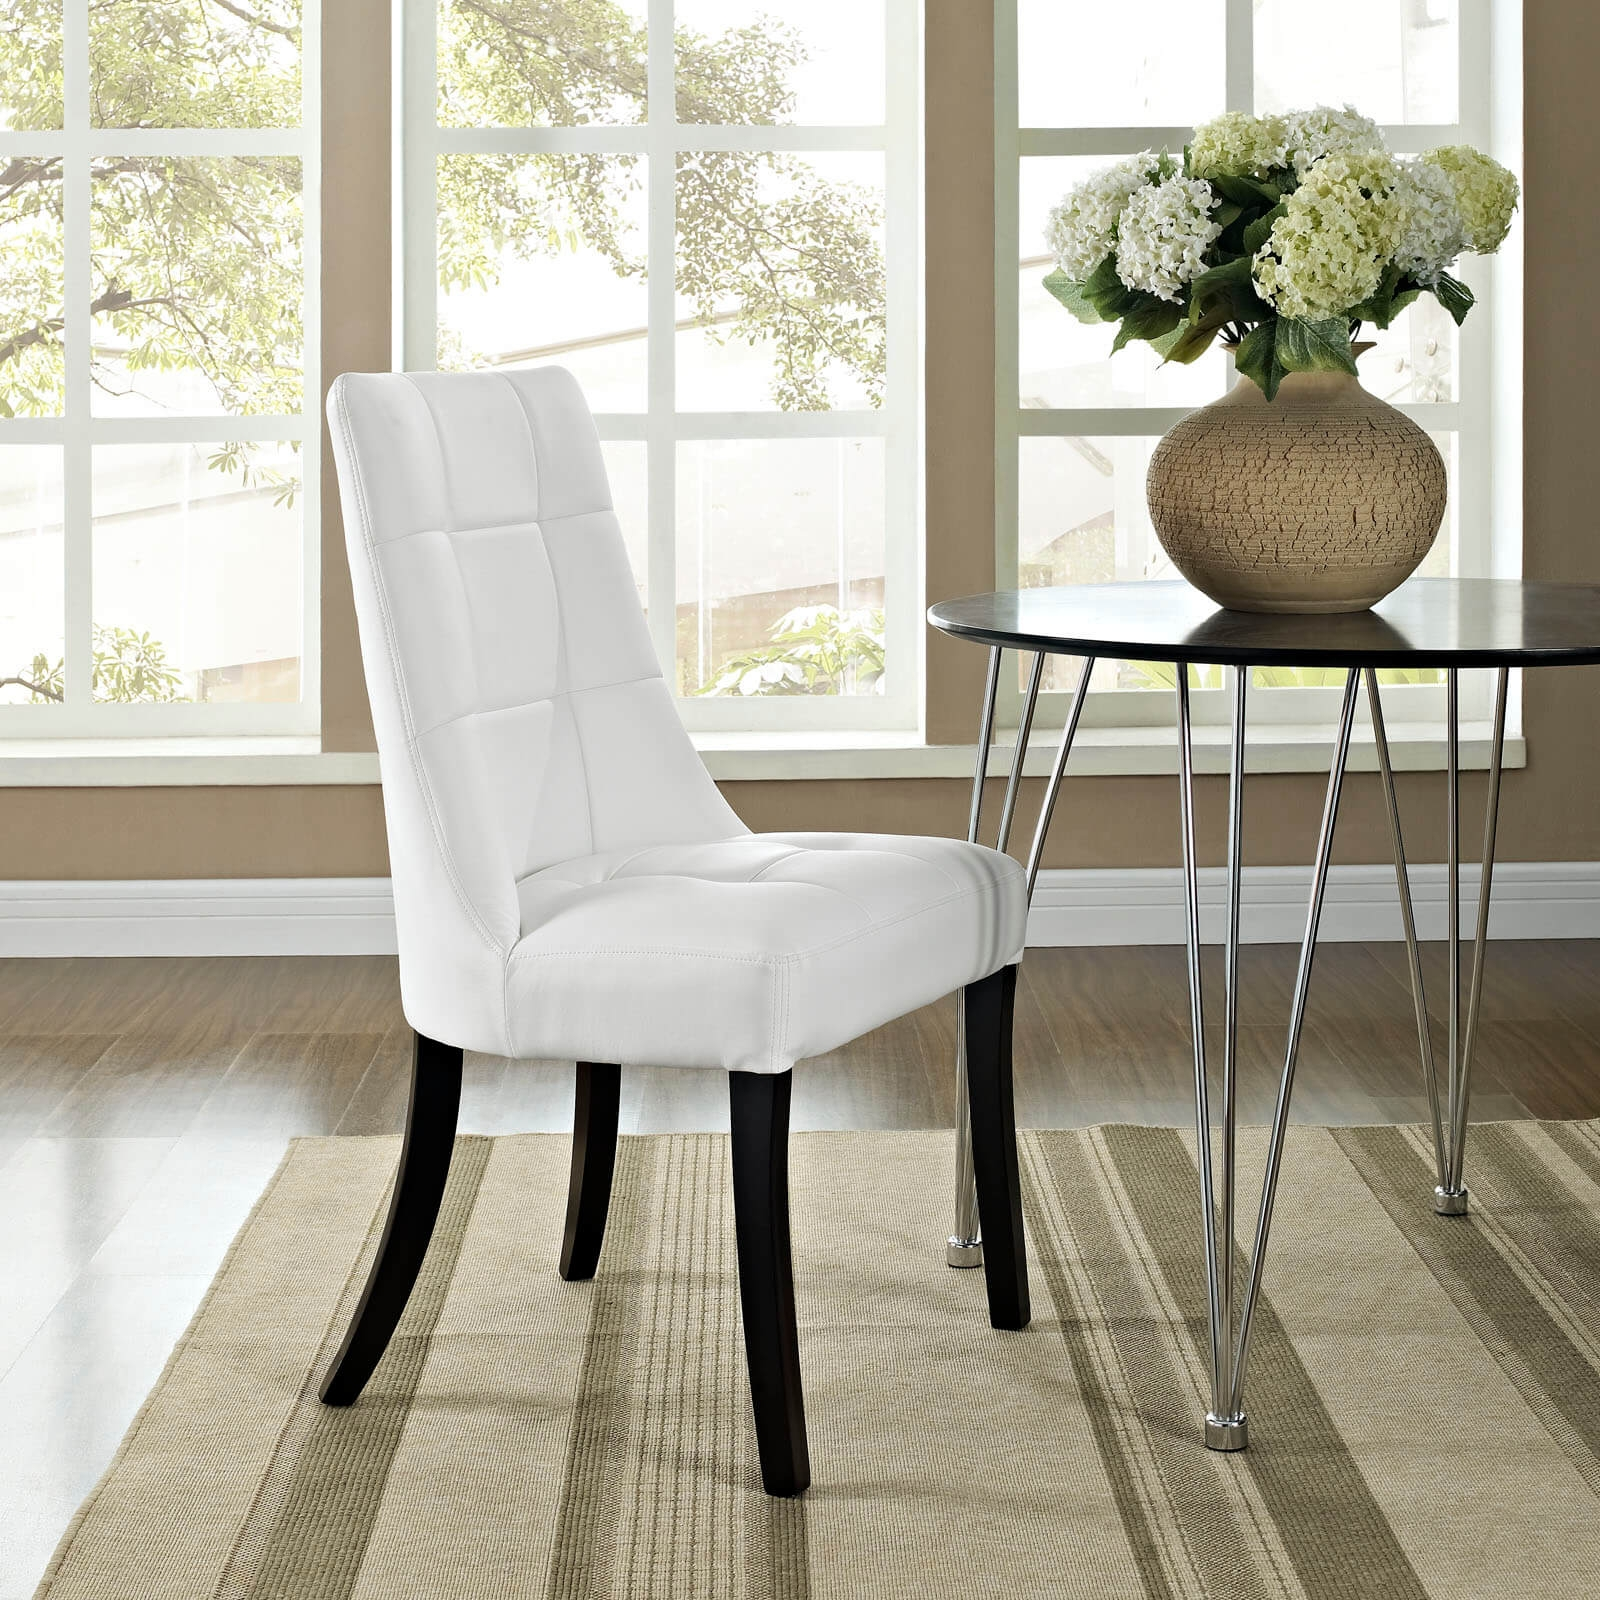 Upholstered dining chair environmental